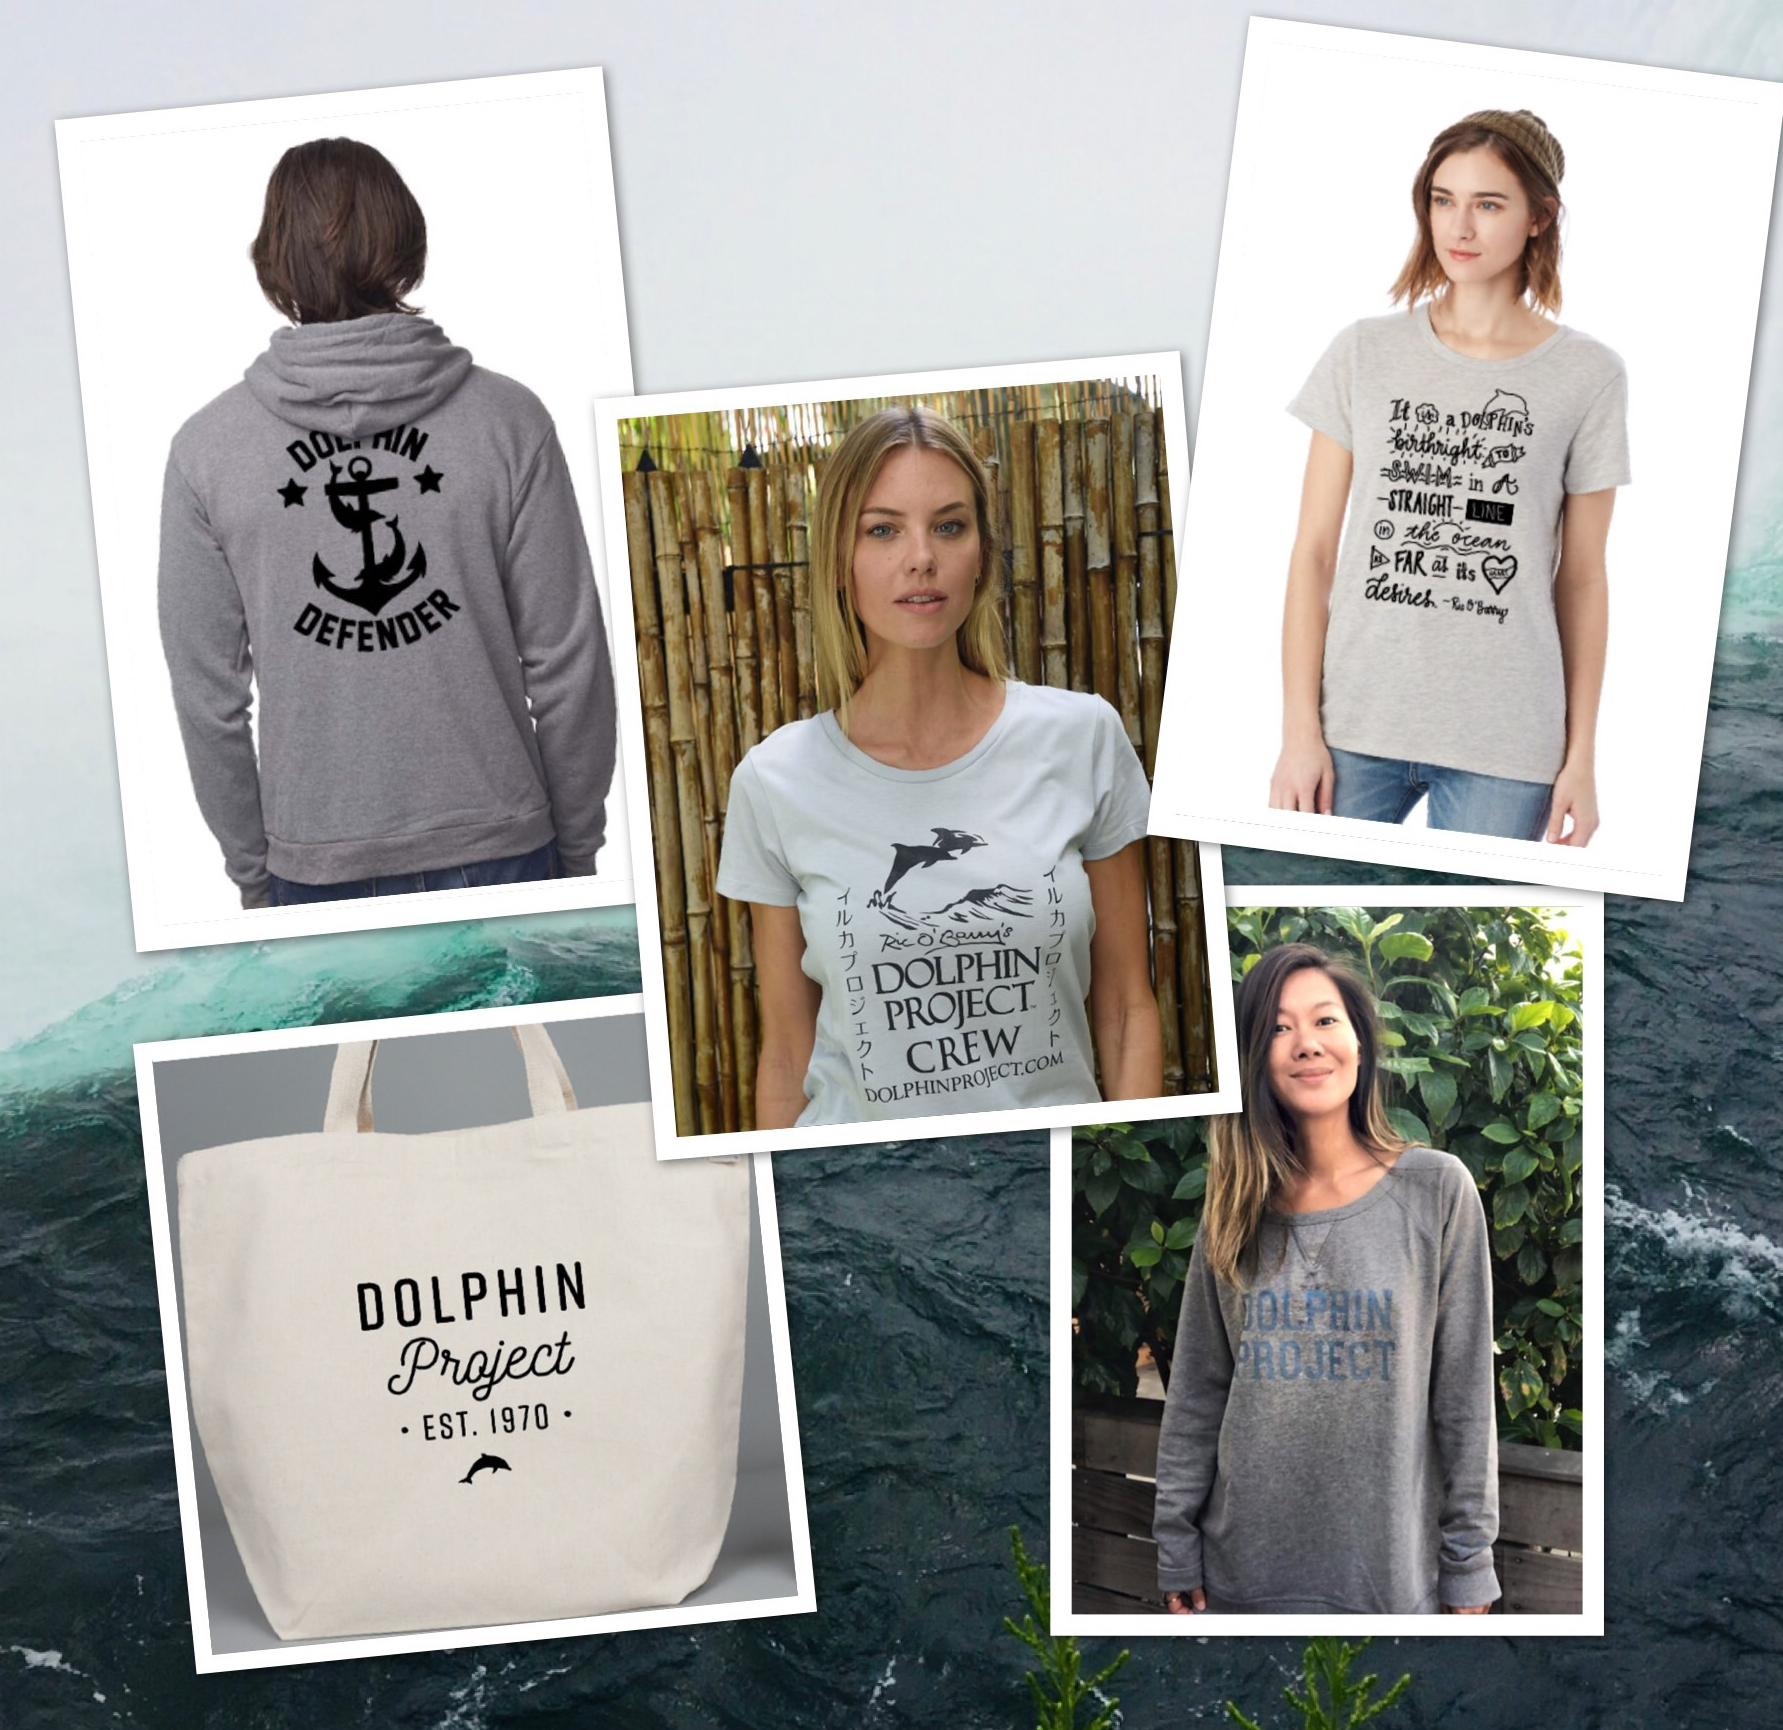 Shop Dolphin Project authentic gear